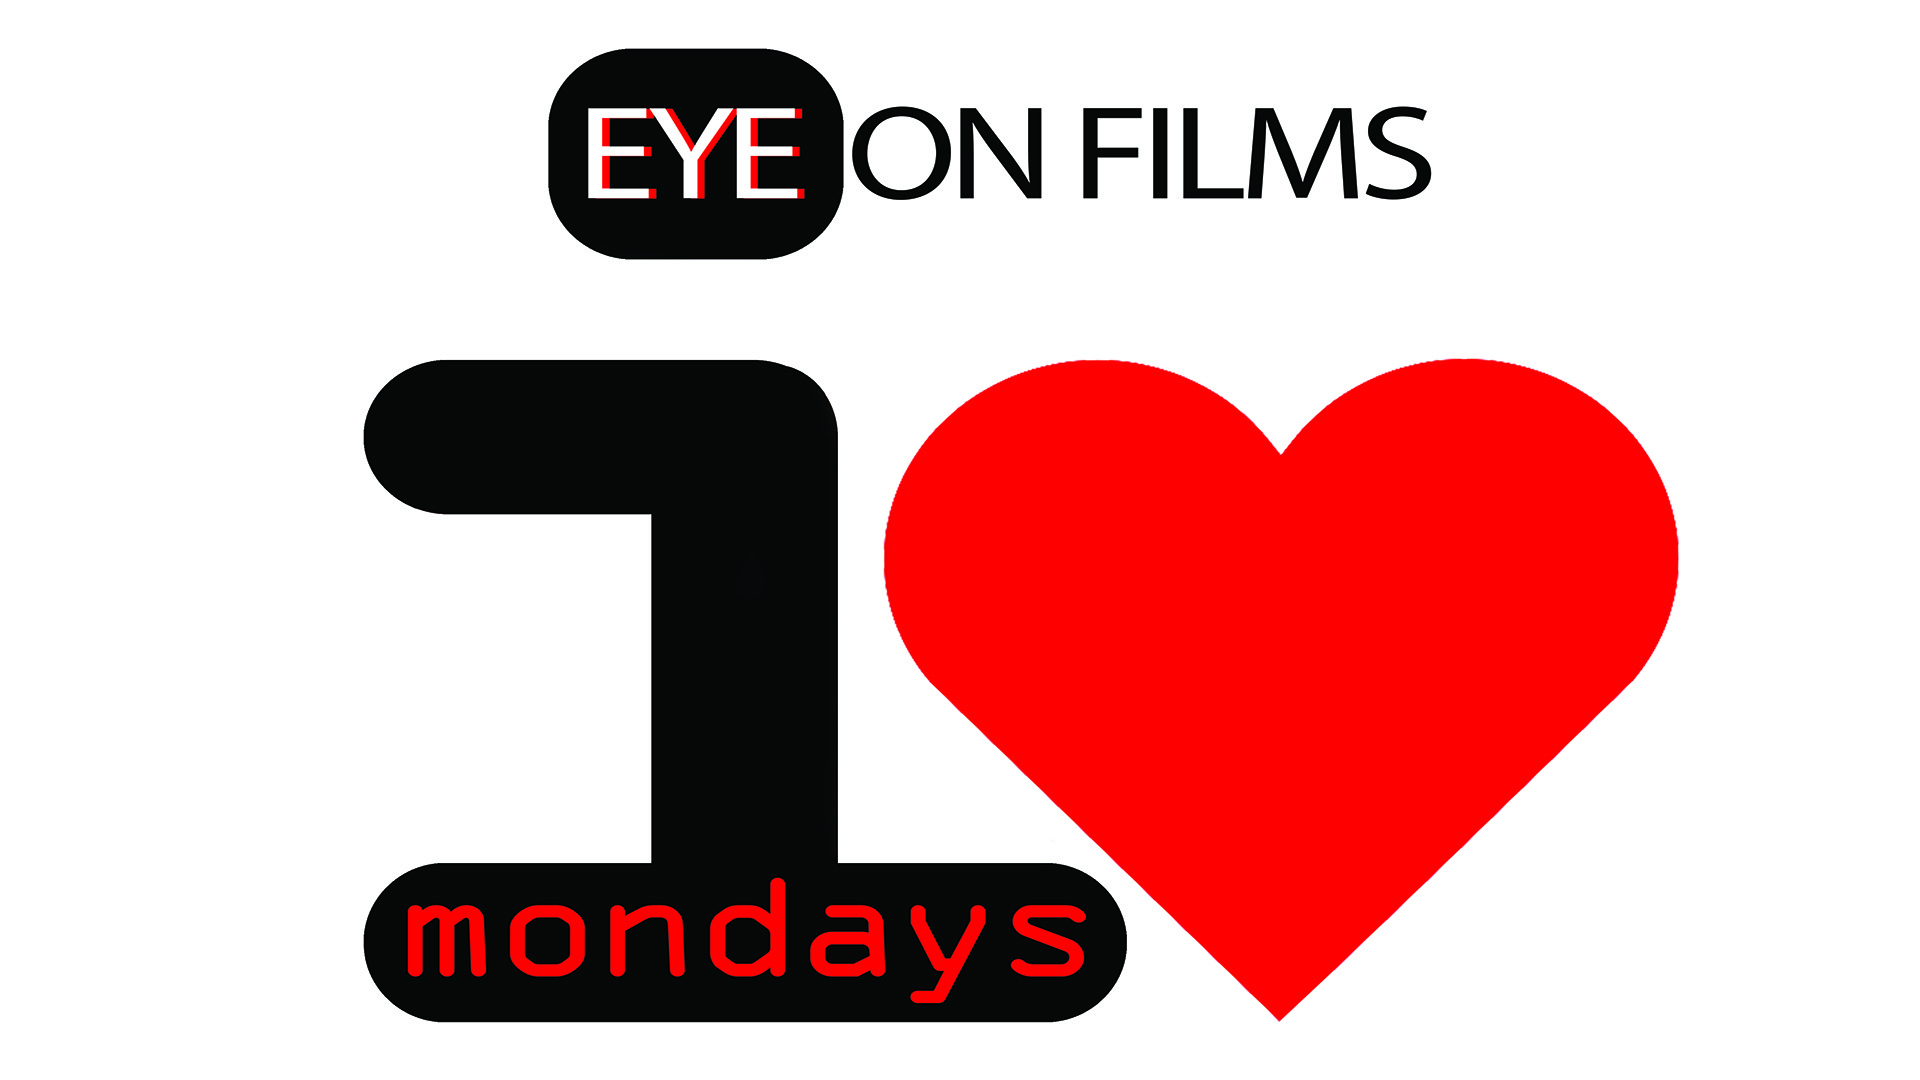 Eye on films, i love mondays!